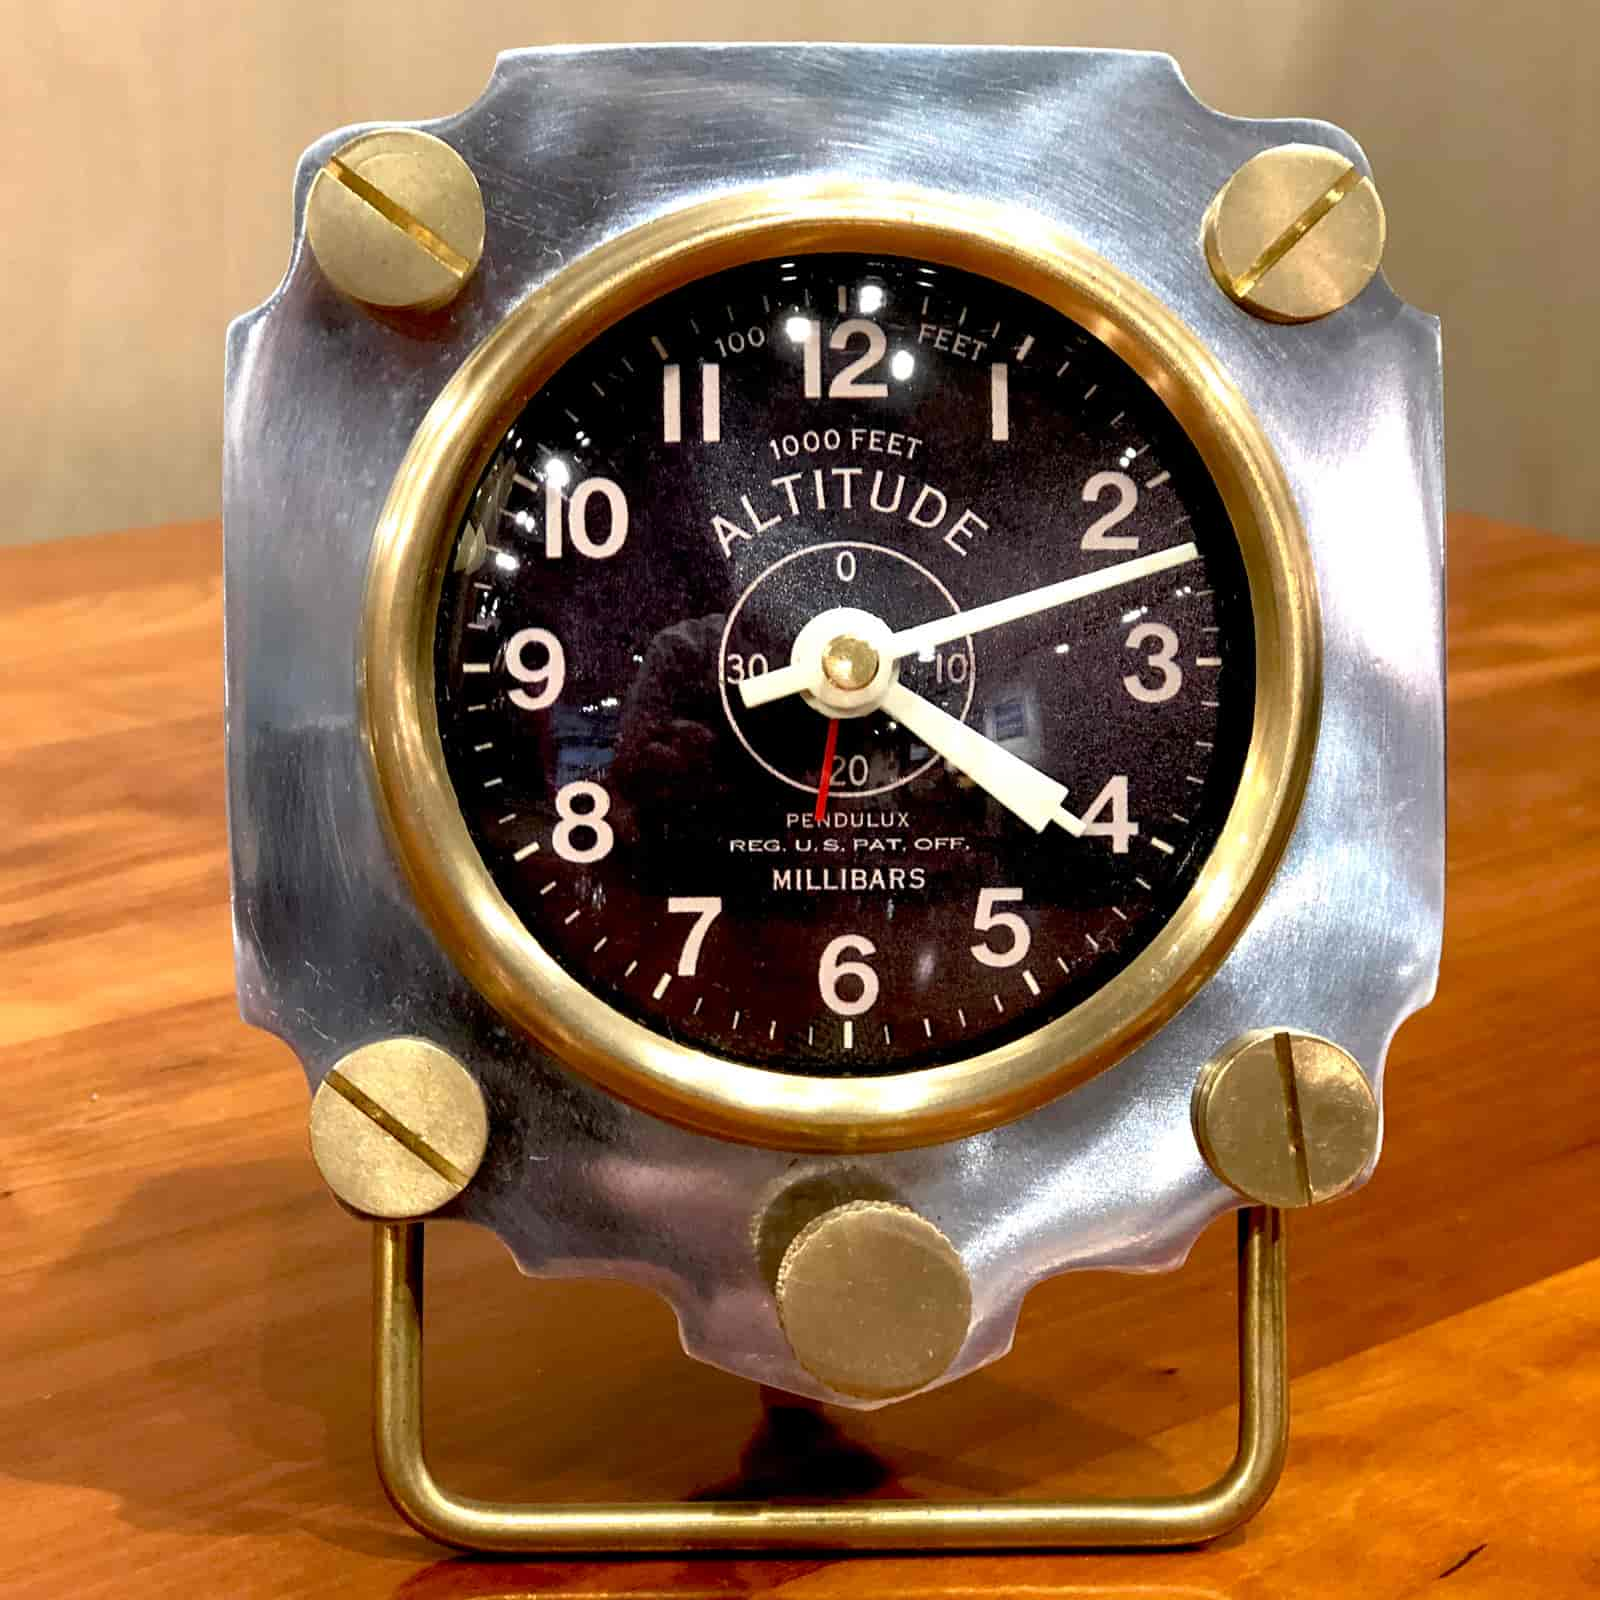 Front view of Rosie's Workshop Altimeter Alarm Clock in chrome finish. A wonderful retro alarm clock design based on altimeters from WWII fighter planes.